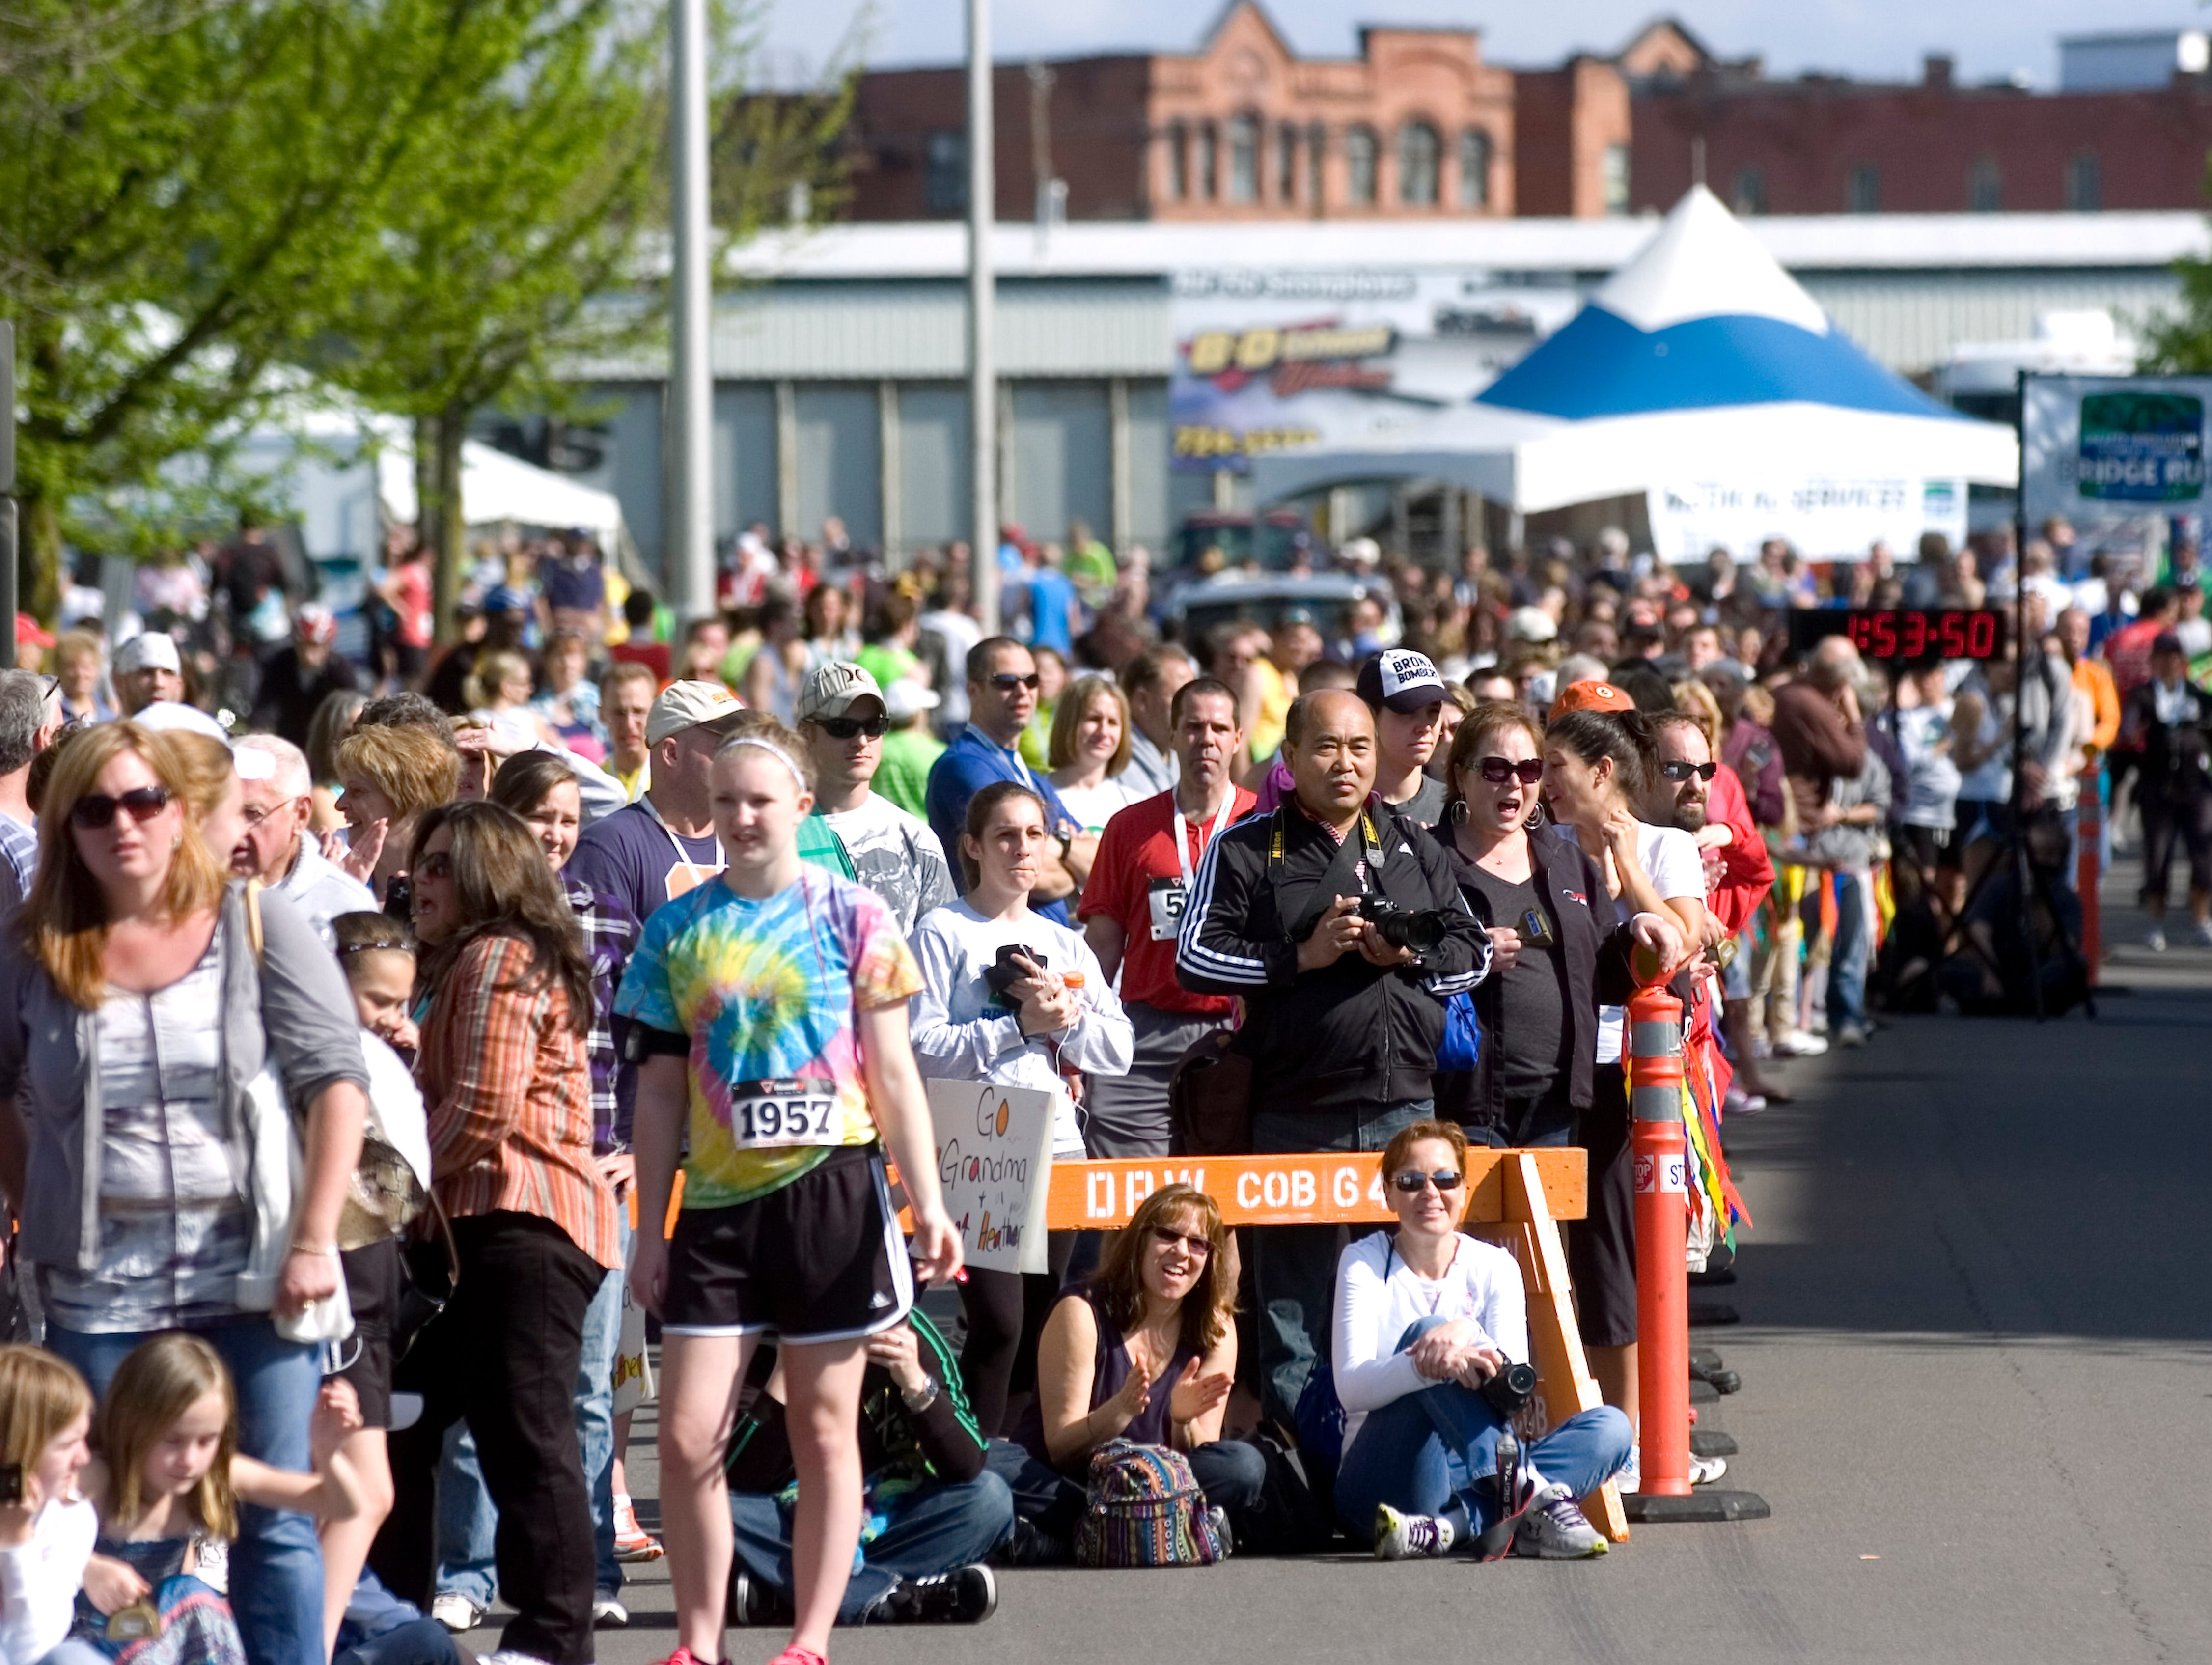 2012: A crowd gathers to watch runners cross the finish line during the Greater Binghamton Chamber of Commerce Bridge Run half-marathon on Sunday in downtown Binghamton.